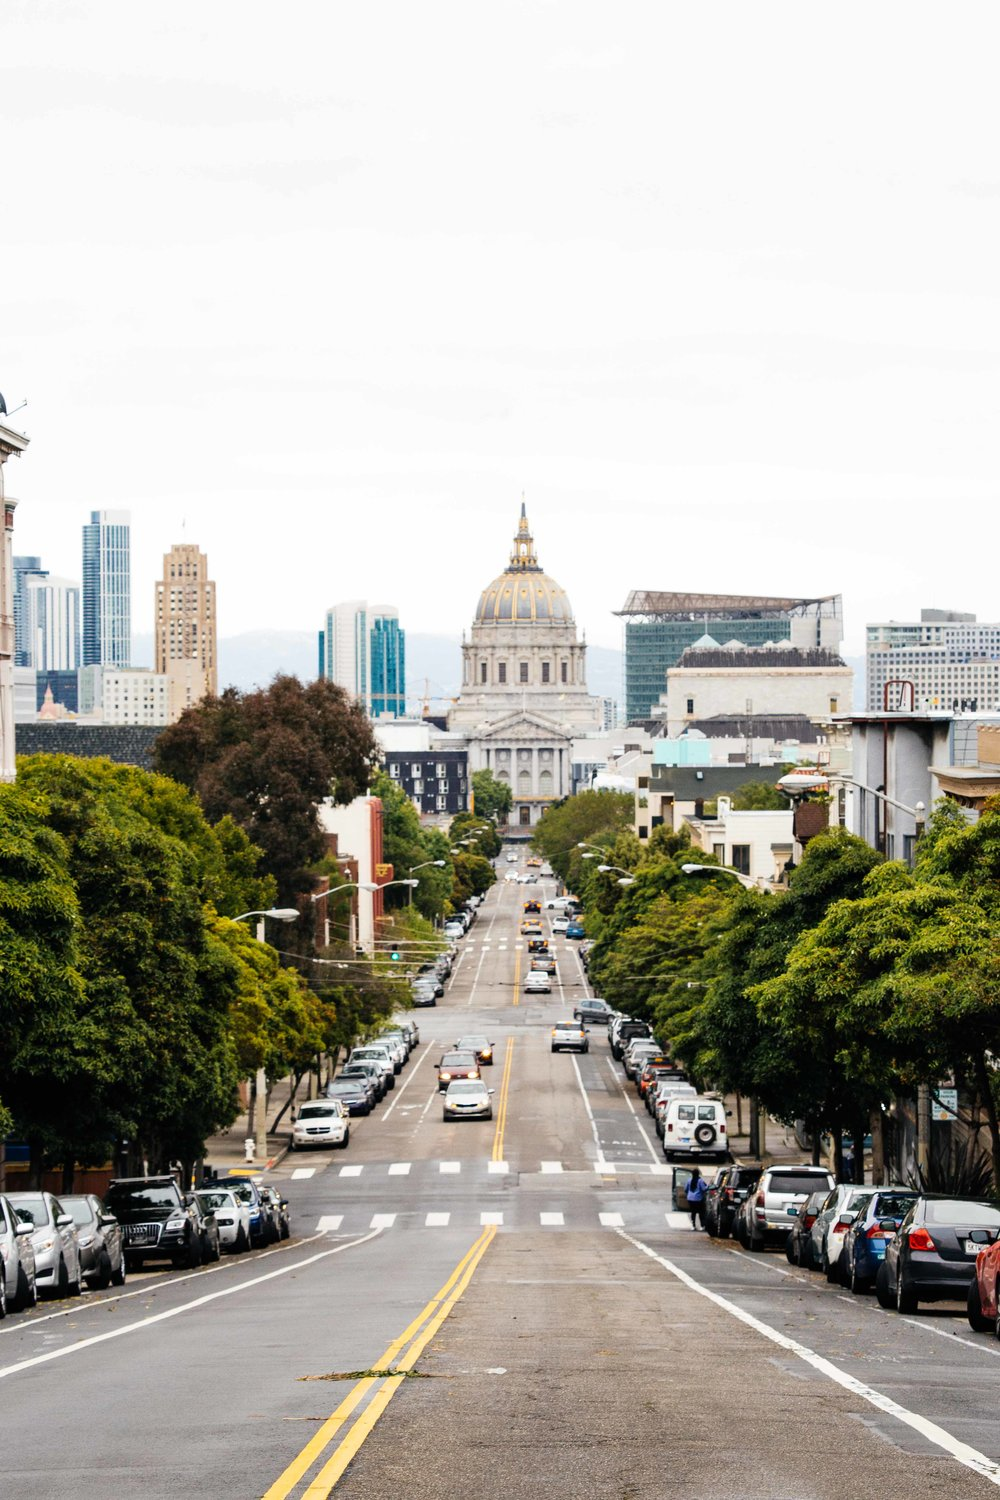 One of San Francisco's streets. Photo: Marine Raynard